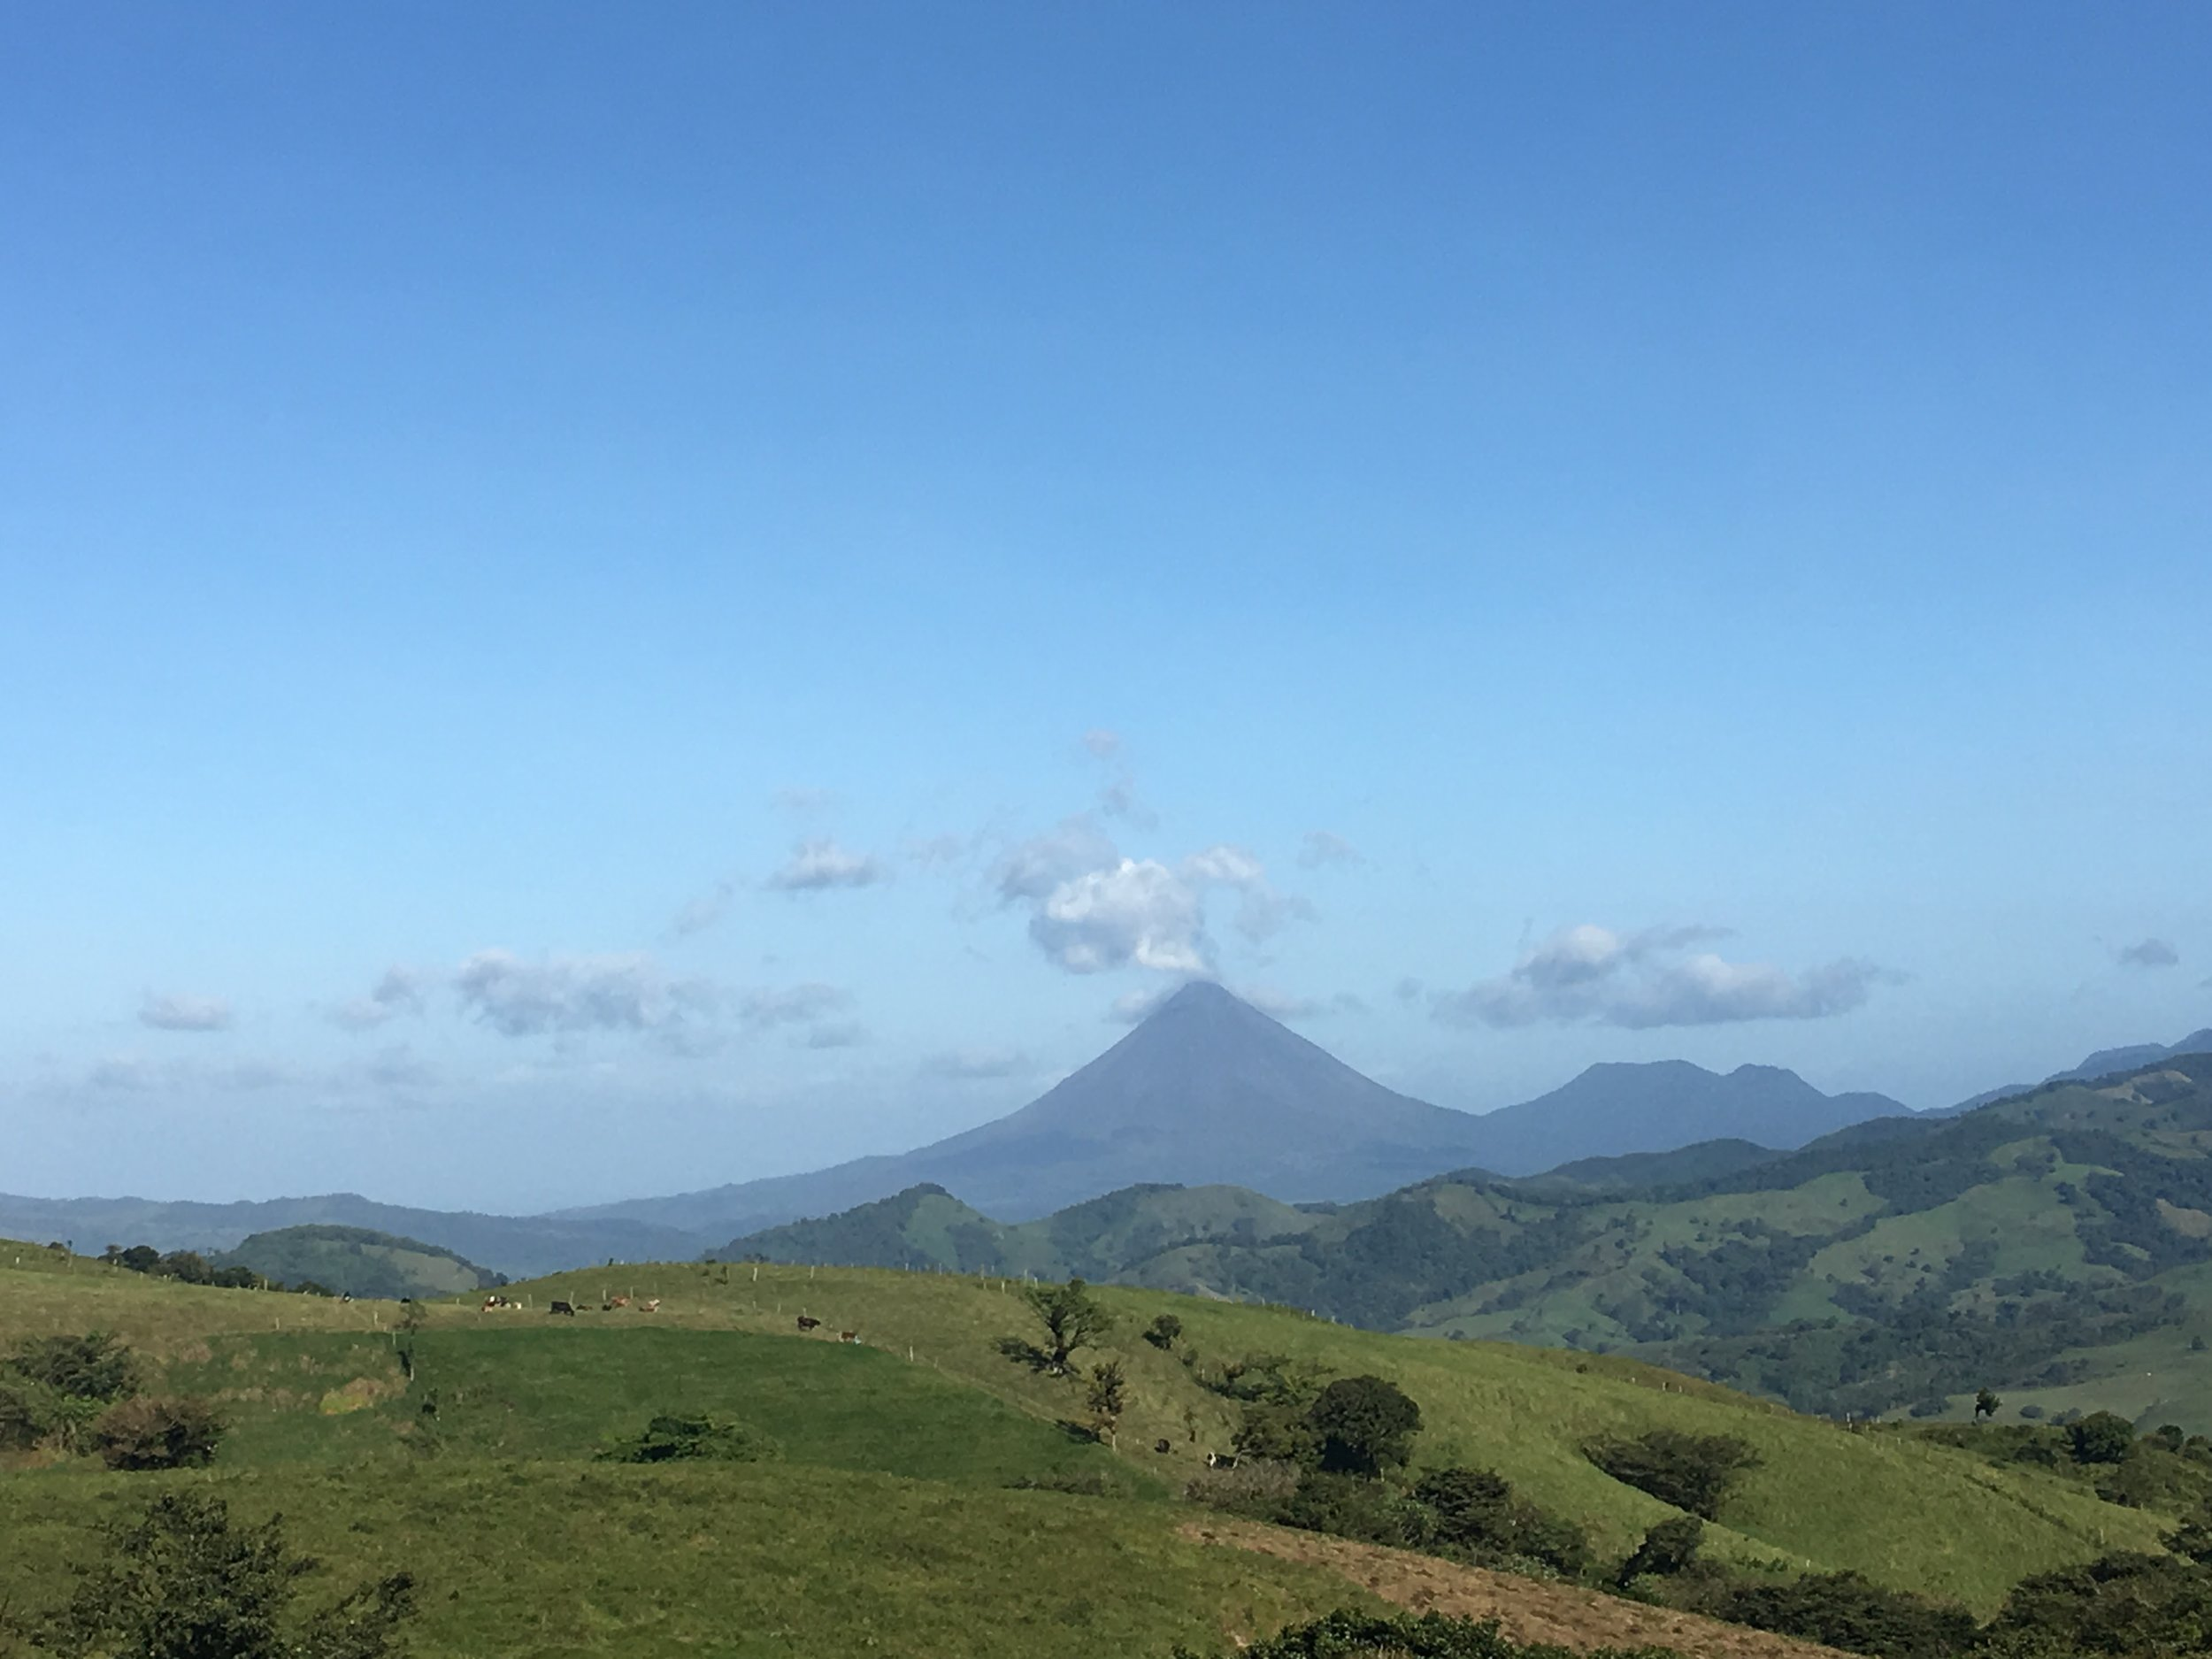 Arenal (left) and Cerro Chato (right) in the background